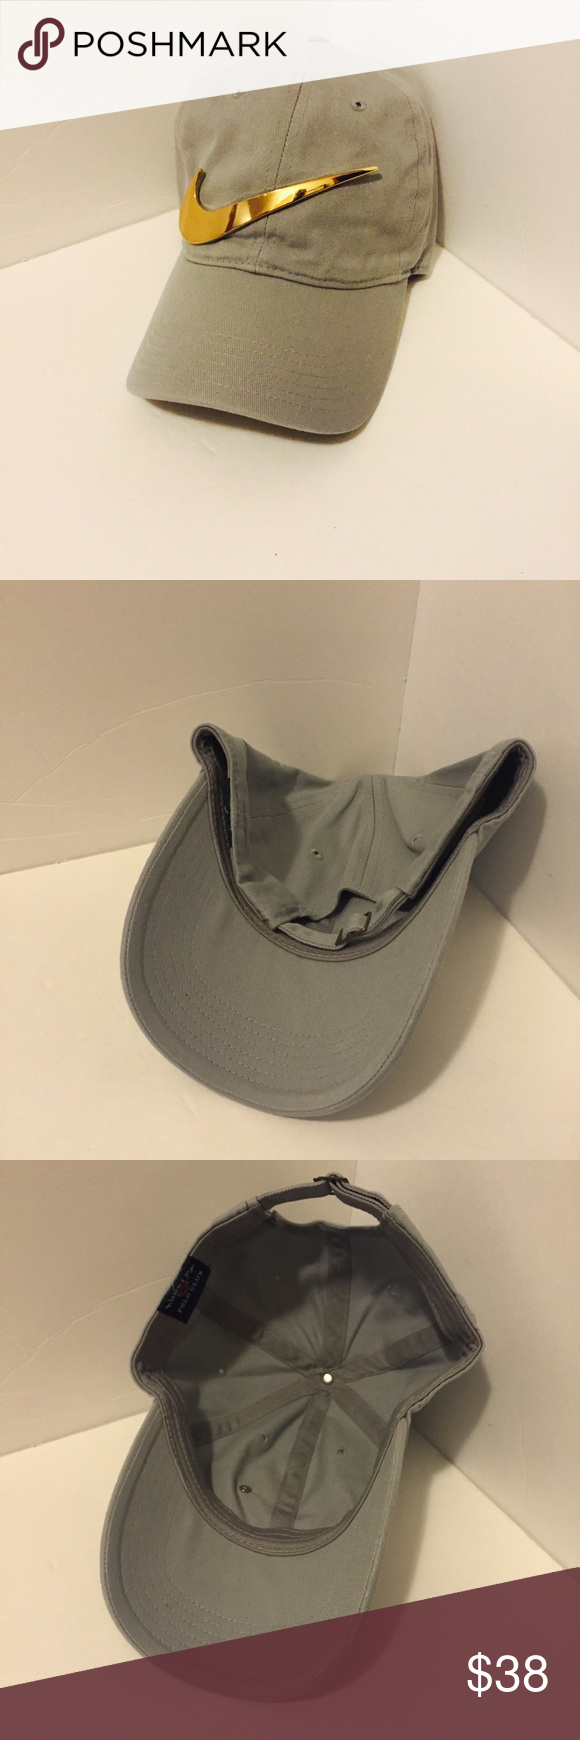 3872f93d2f53 Nike hat Custom made with a gold metal Swoosh Don t ask me to lower ...